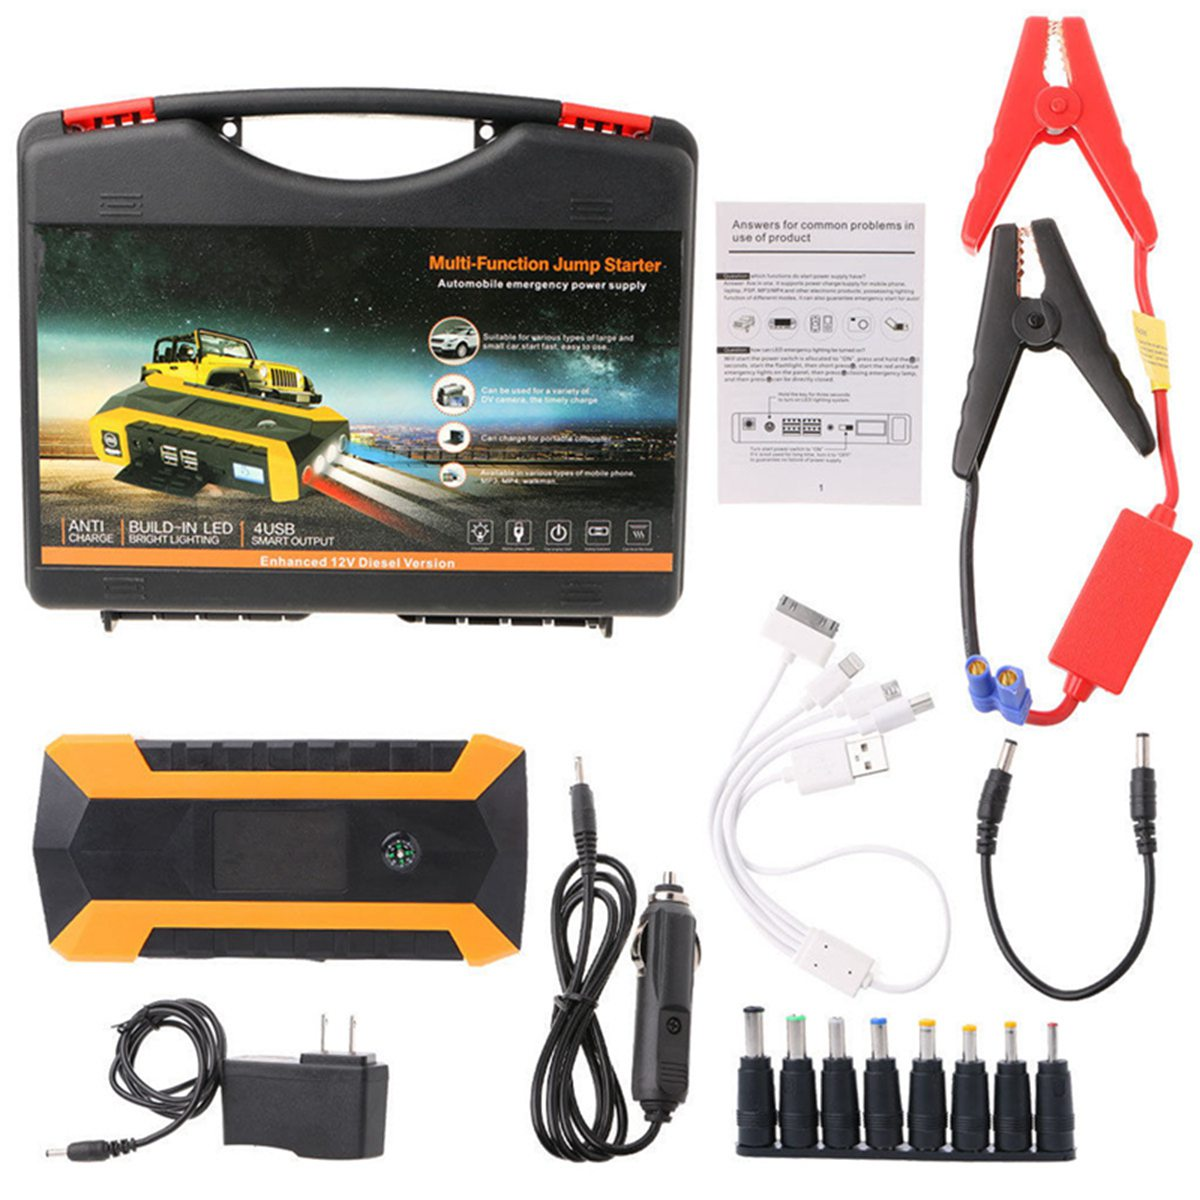 1set 89800mAh 12V 4USB Car Battery Charger Starting Car Jump Starter Booster Power Bank Tool Kit For Auto Starting Device 89800mah car jump starter 12v 4usb 600a portable car battery booster charger booster power bank starting device car starter